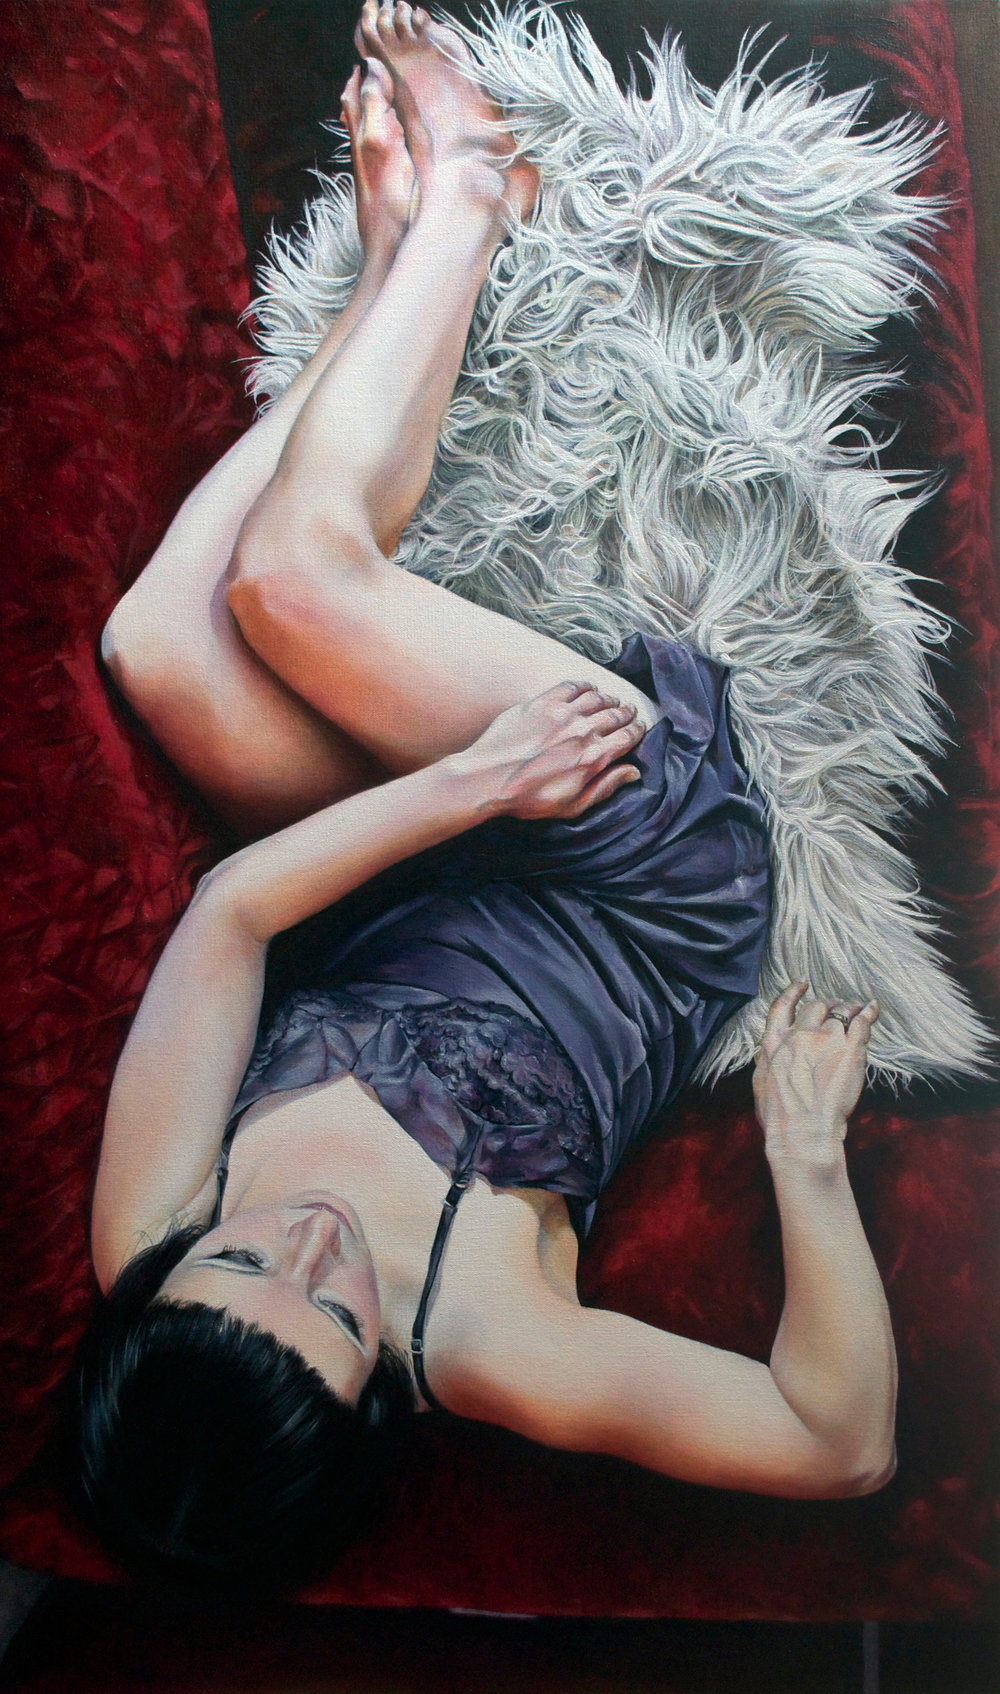 Victoria Selbach  |   The Slip   |  Acrylic on Canvas  |  46 x 28 inches or 116 ¾ x 71 cm